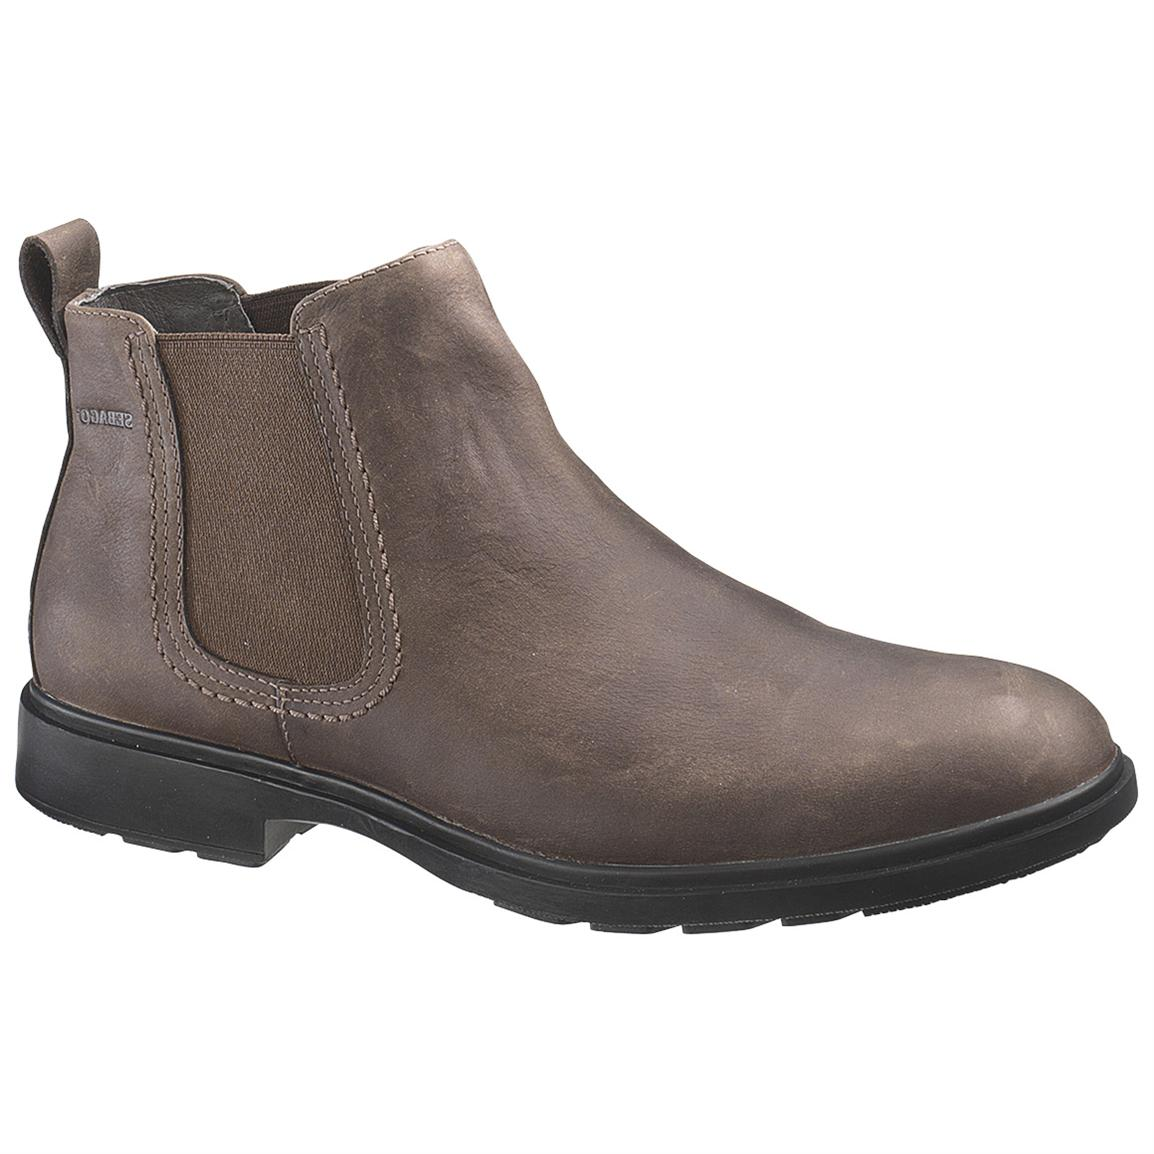 Pull On Boots Mens 9X1l4ttu